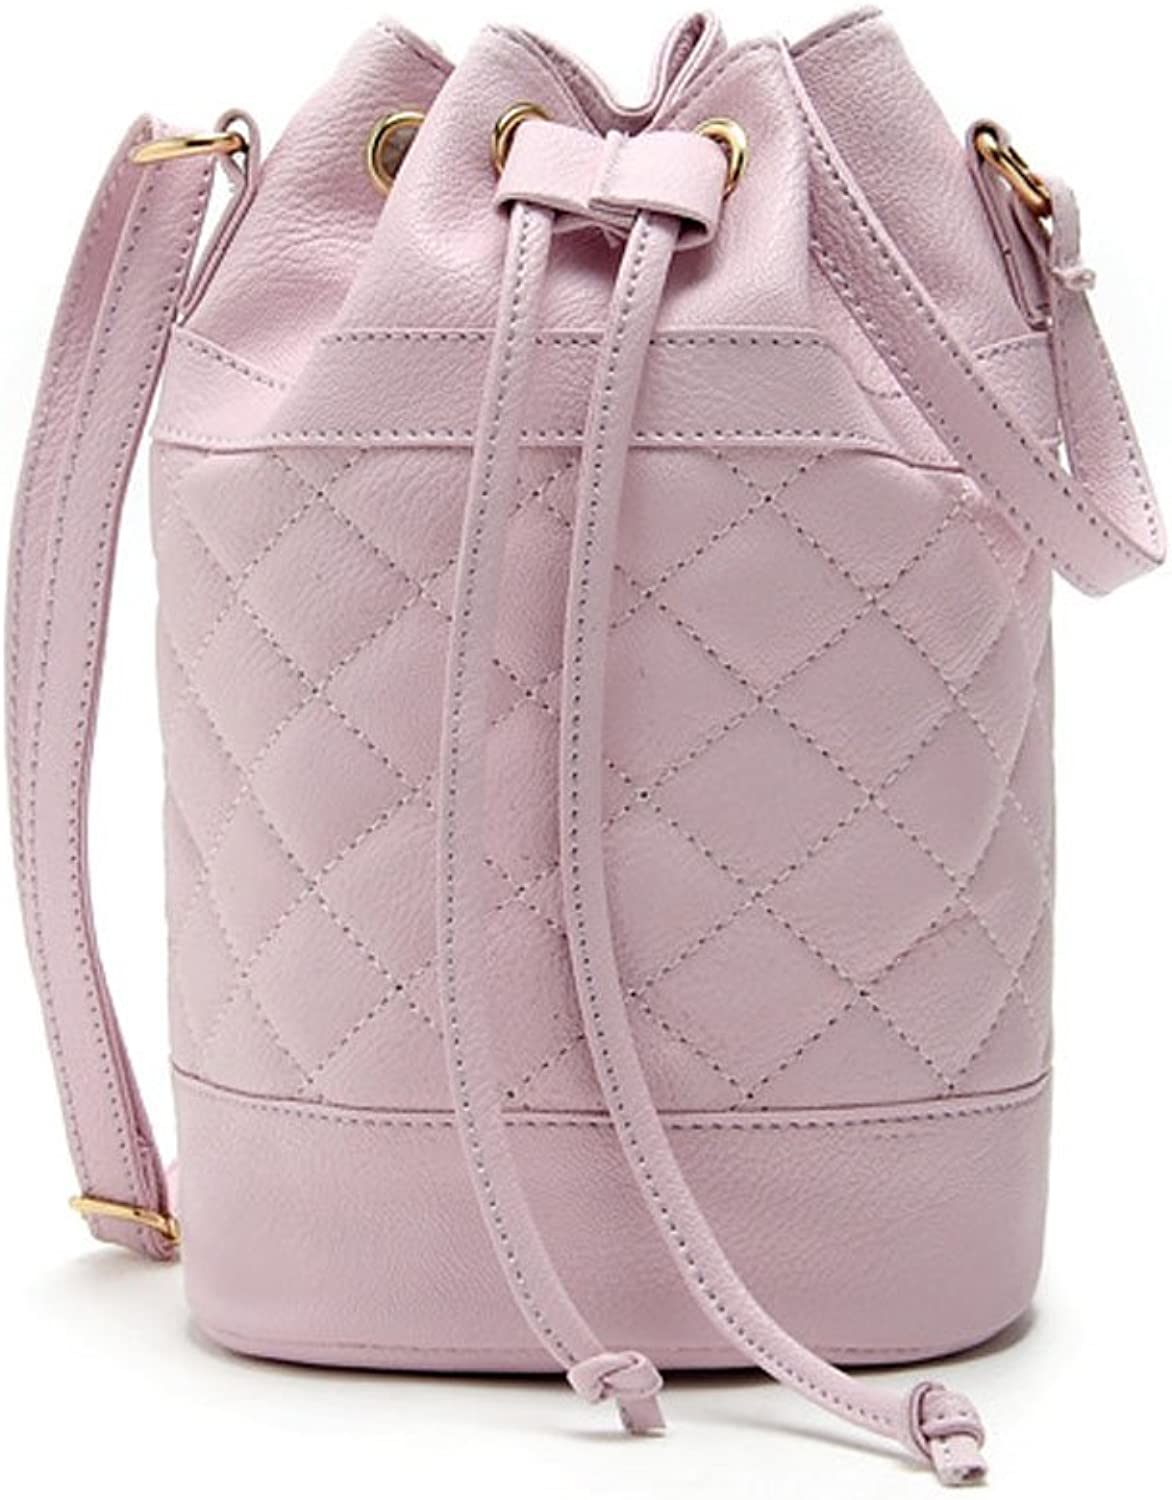 Catkit Charm Womens Quilted Drawstring Candy colors Tote Handbag Shoulder Crossbody Bag